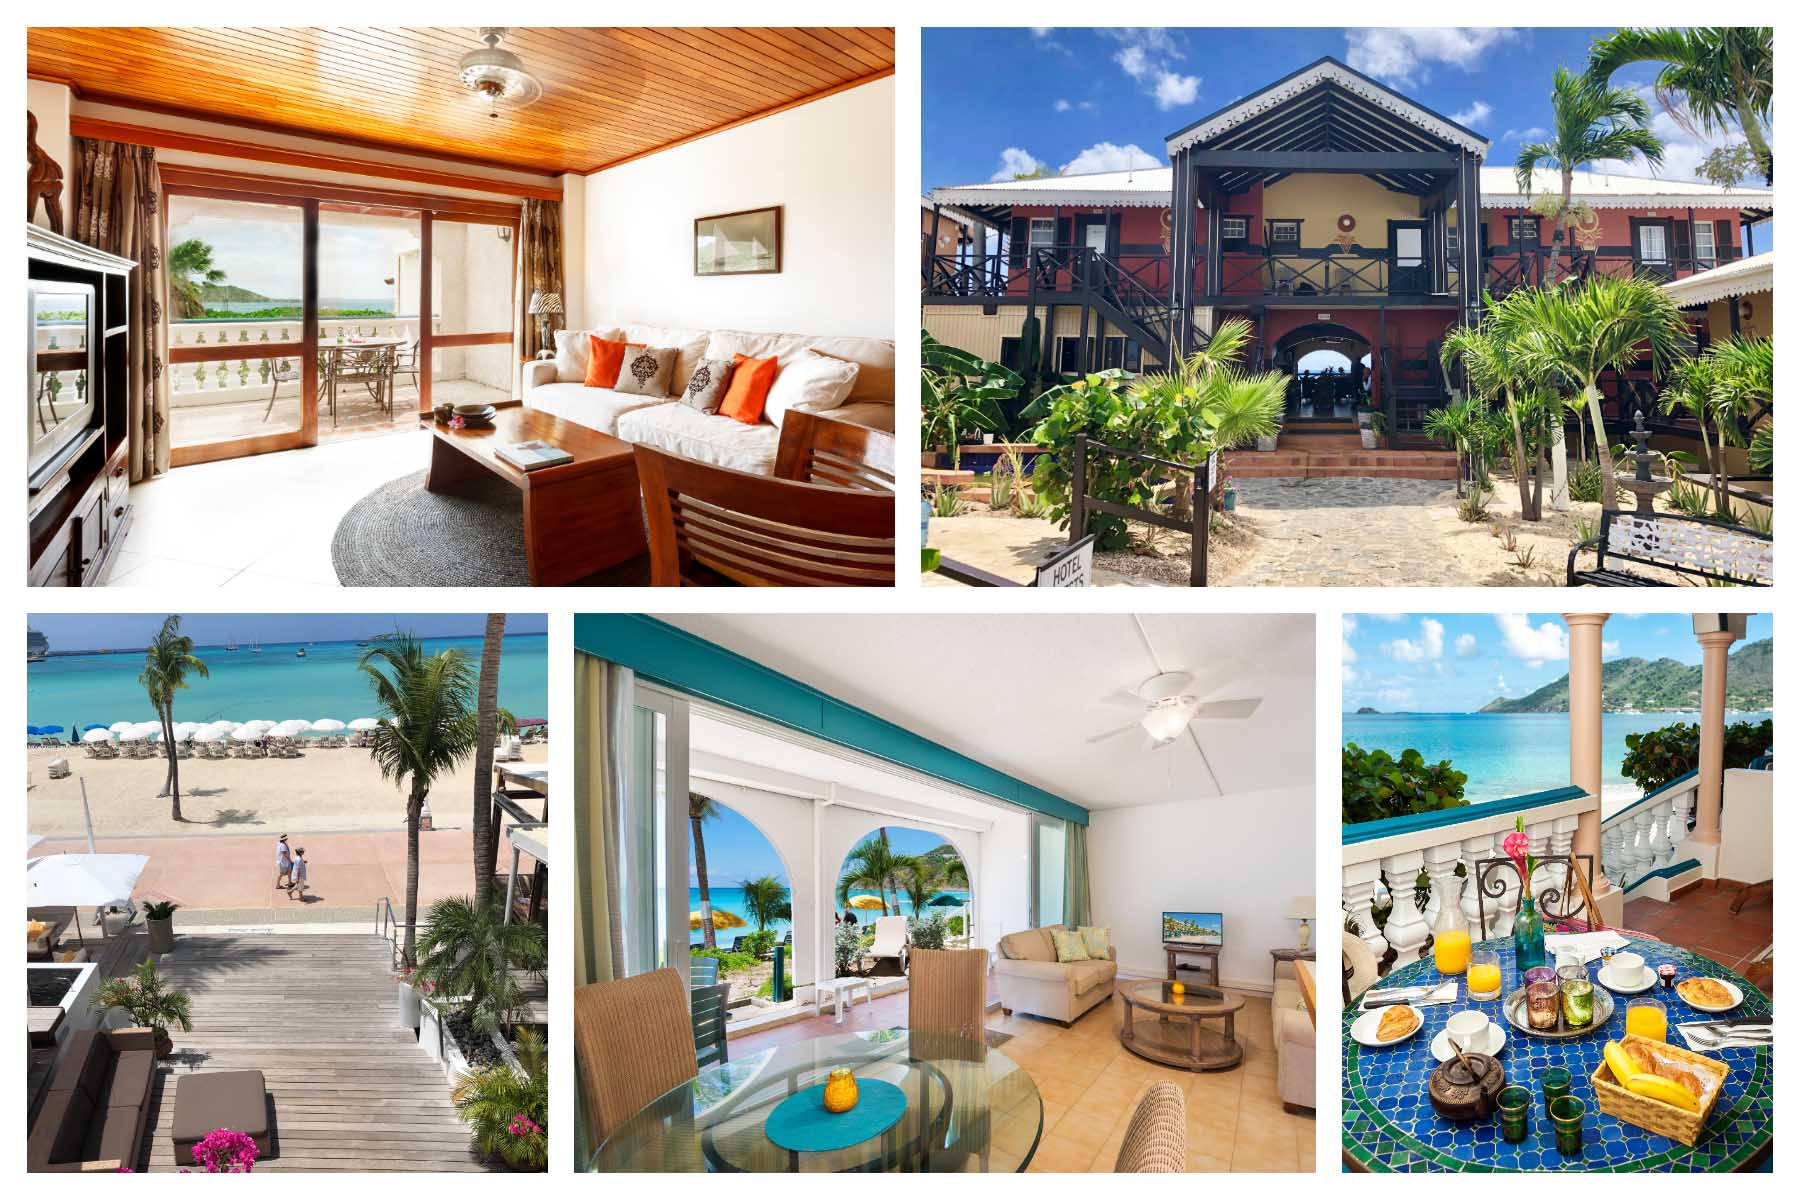 Best accommodations - Lodging on St. Martin / St.Maarten